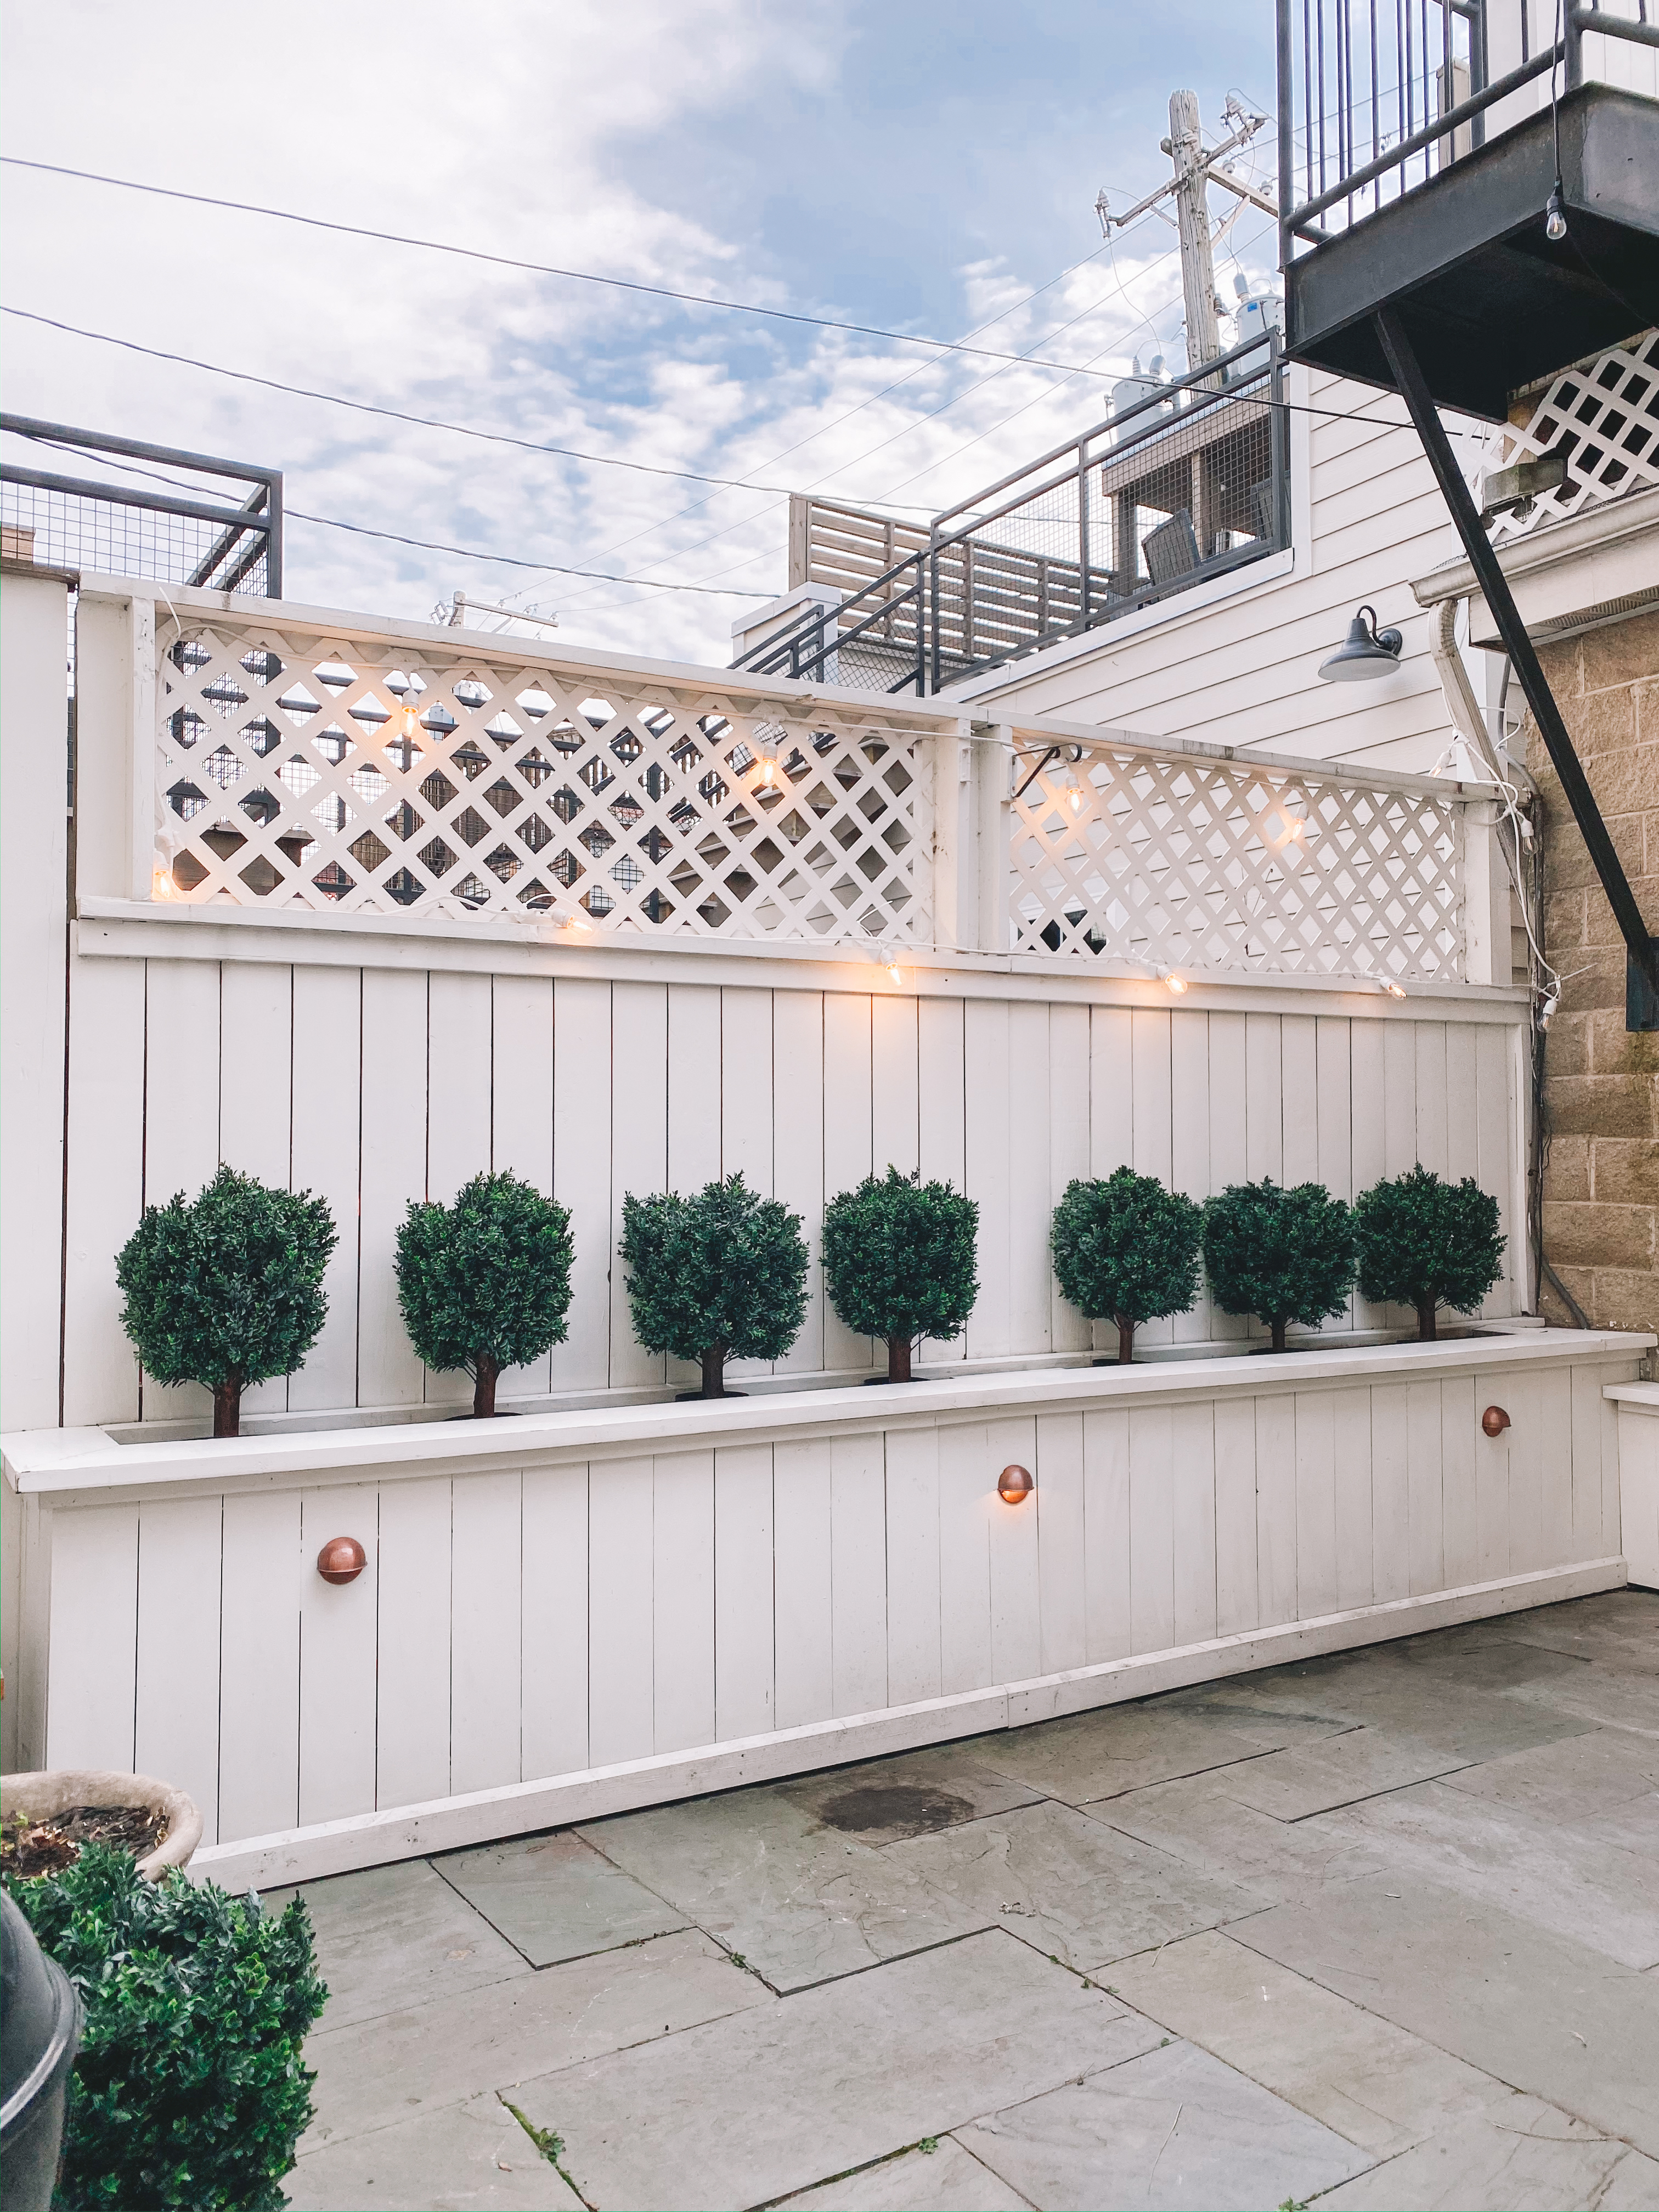 Patio With The Awesome Faux Boxwoods - Kelly in the City